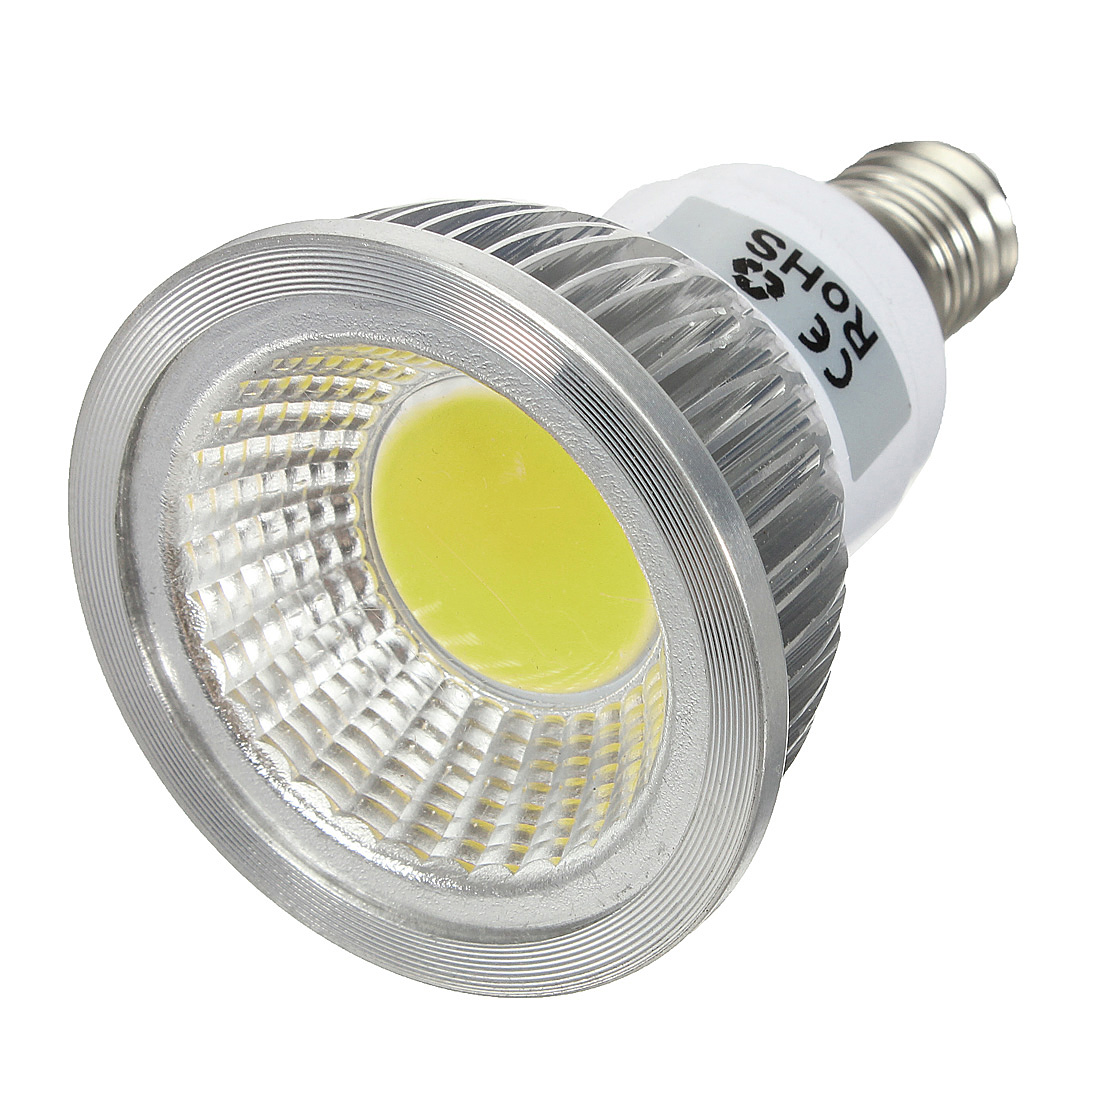 mr16 e27 e14 gu10 6w 9w 12w cob led dimmable downlight globe bulbs spot light natural white. Black Bedroom Furniture Sets. Home Design Ideas